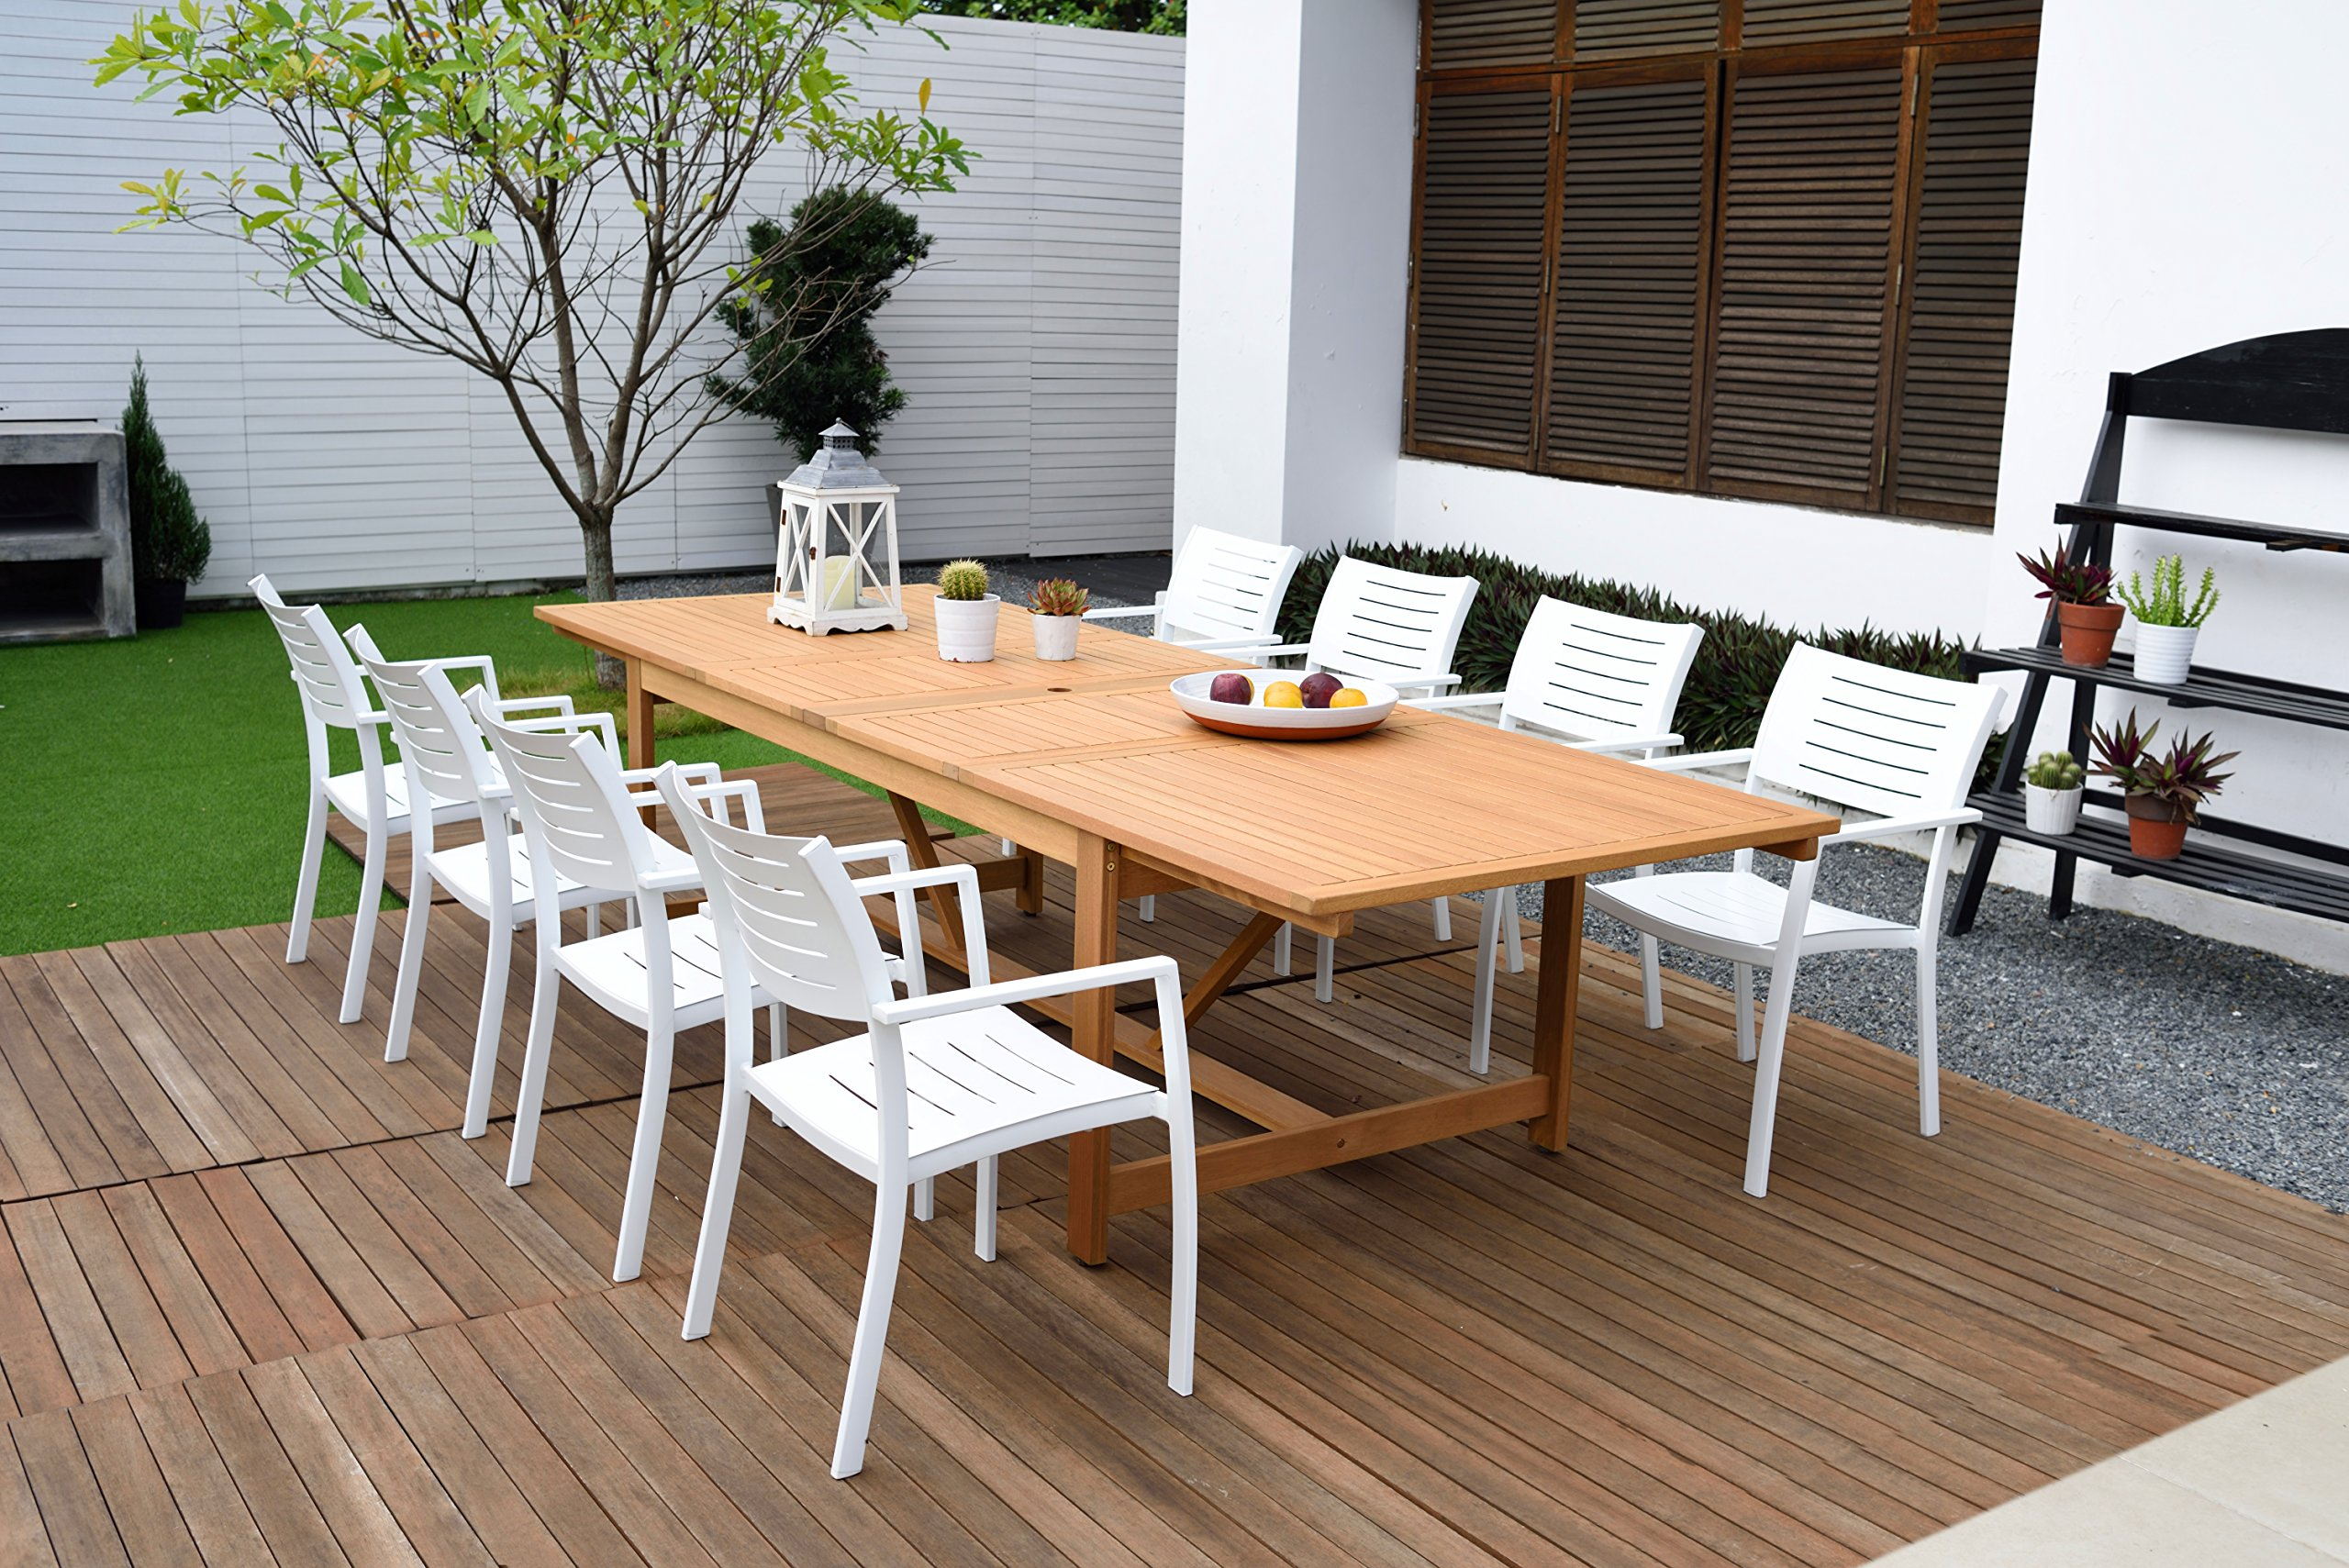 Brampton 9 Piece Outdoor Eucalyptus Extendable Dining Set | Perfect for Patio | with Teak Finish, White - Perfect outdoors: 9 Piece patio Dining furniture set, ideal for patios, backyards, gardens, balconies, Poolside and more. Dimensions: Table Dimensions 79L x 42W x 30H Extended Length 118. Chair Dimensions 24L x 23W x 35H Seating Dimensions 17L x 17W x 17H. Table Material: 100% FSC certified High Quality Eucalyptus Wood (Eucalyptus Grandis) with teak finish. Chairs Material: Aluminum. Its resistance to weather and UV radiation makes the set durable and enjoyable. - patio-furniture, dining-sets-patio-funiture, patio - 91 QB0wg0jL -